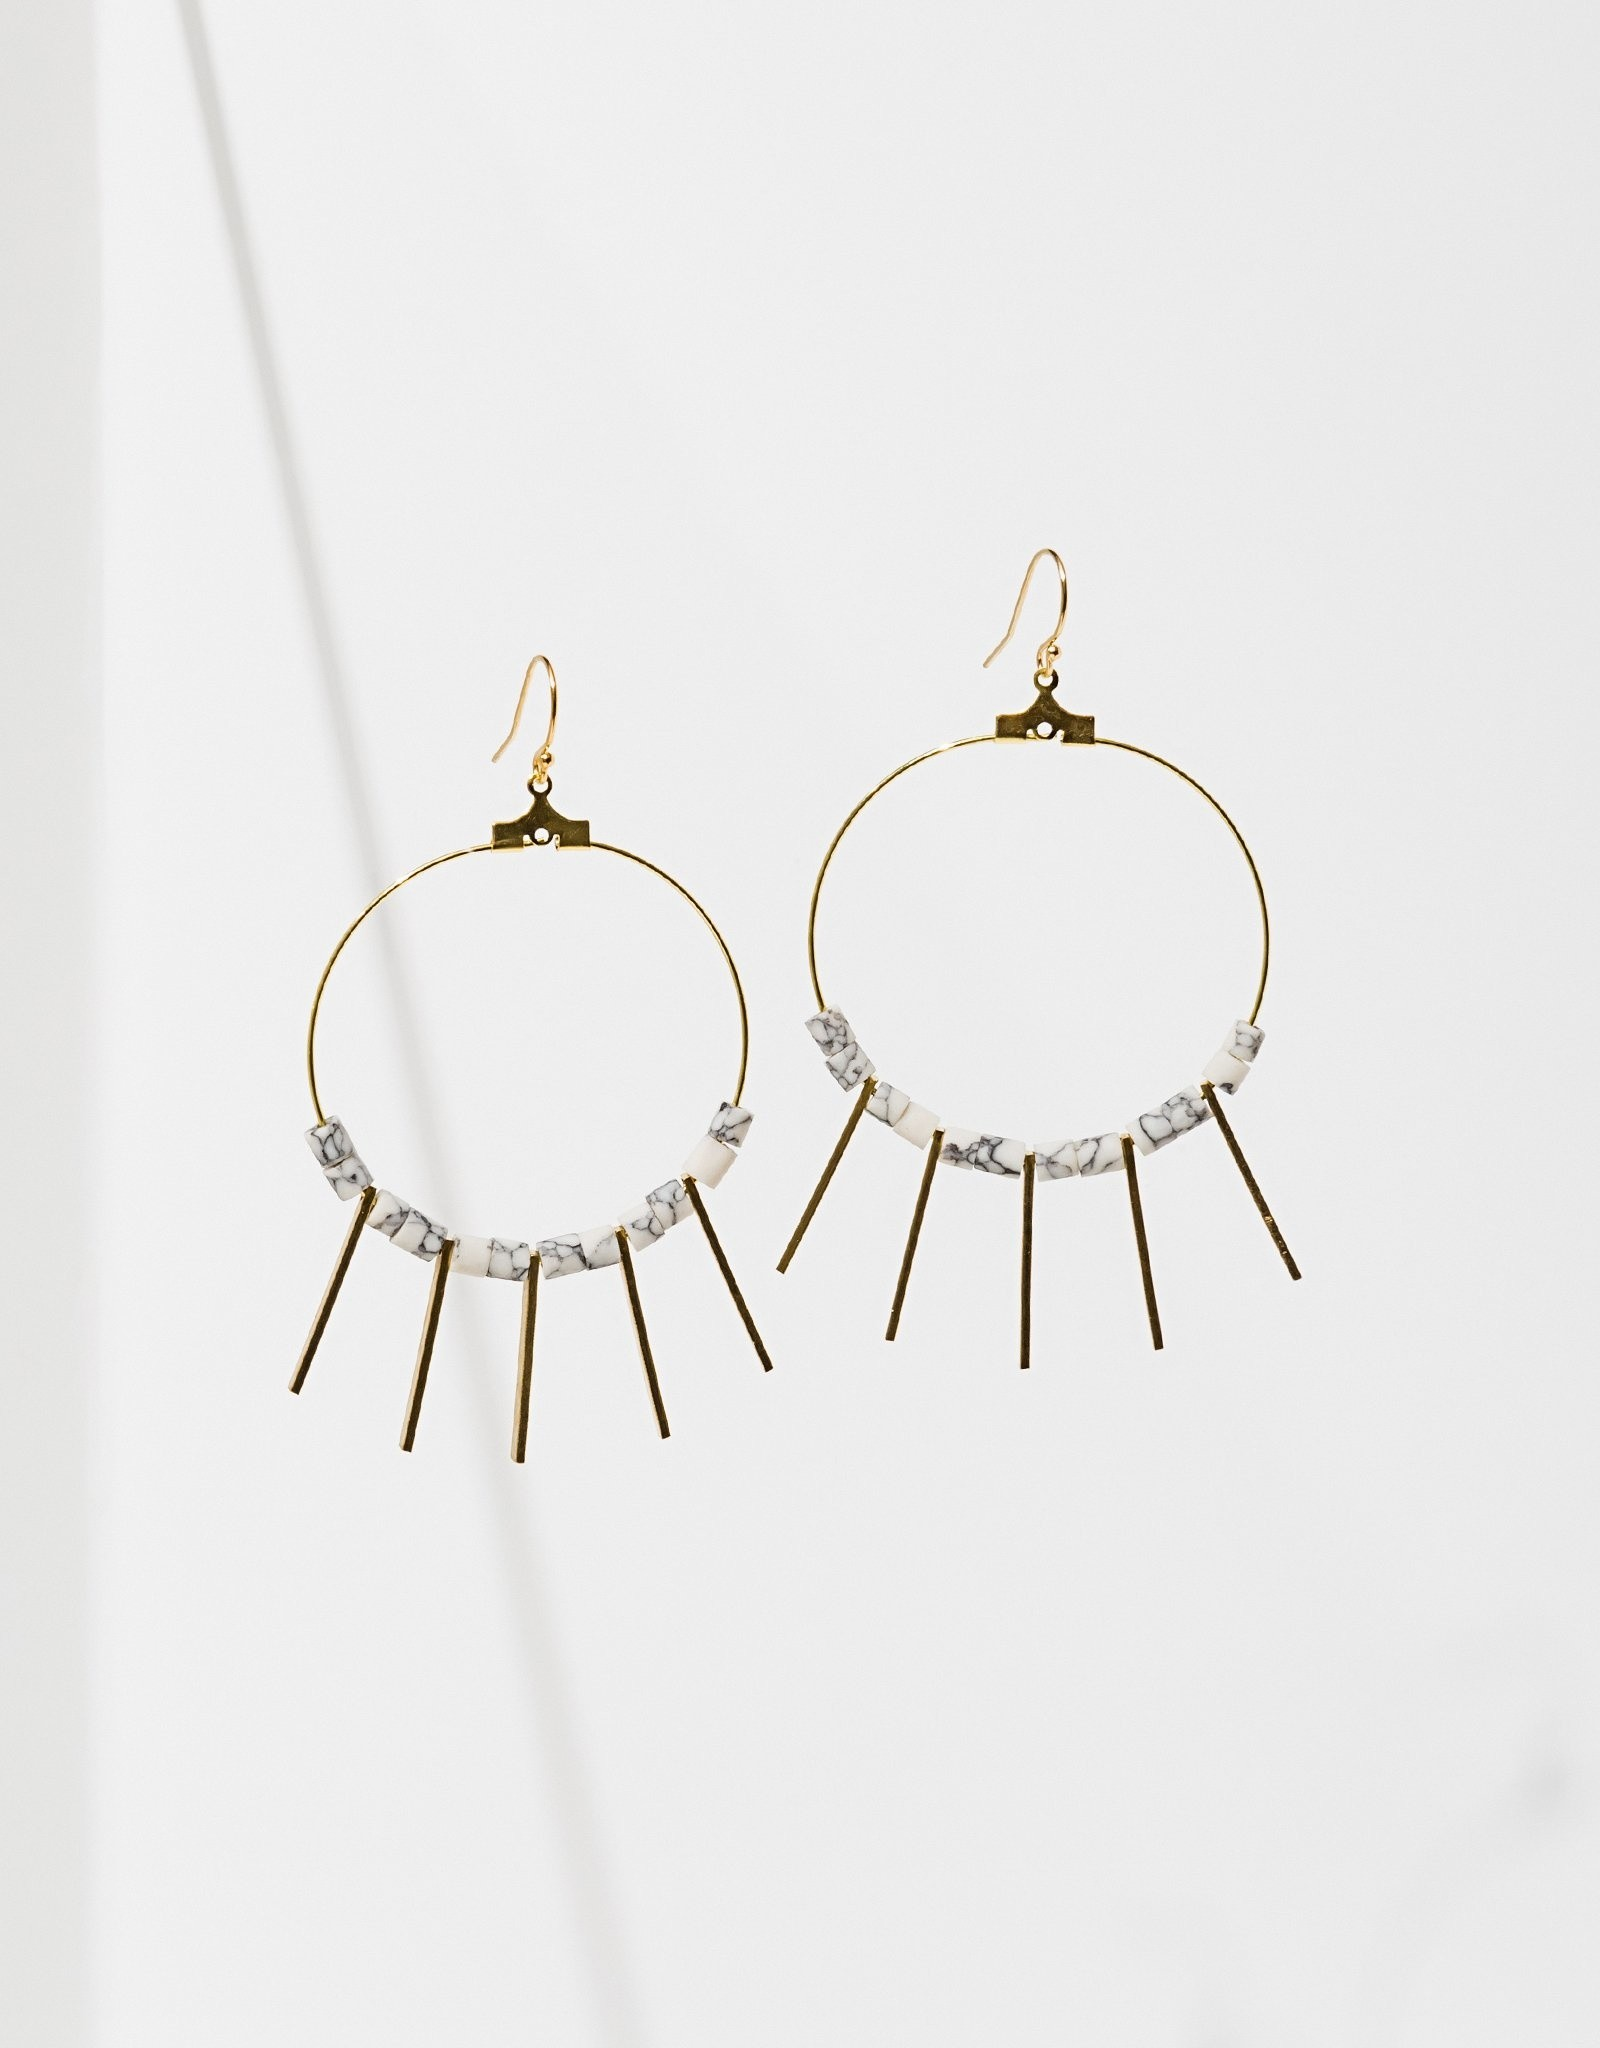 Larissa Loden Jewelry Shani Earrings by Larissa Loden Jewelry